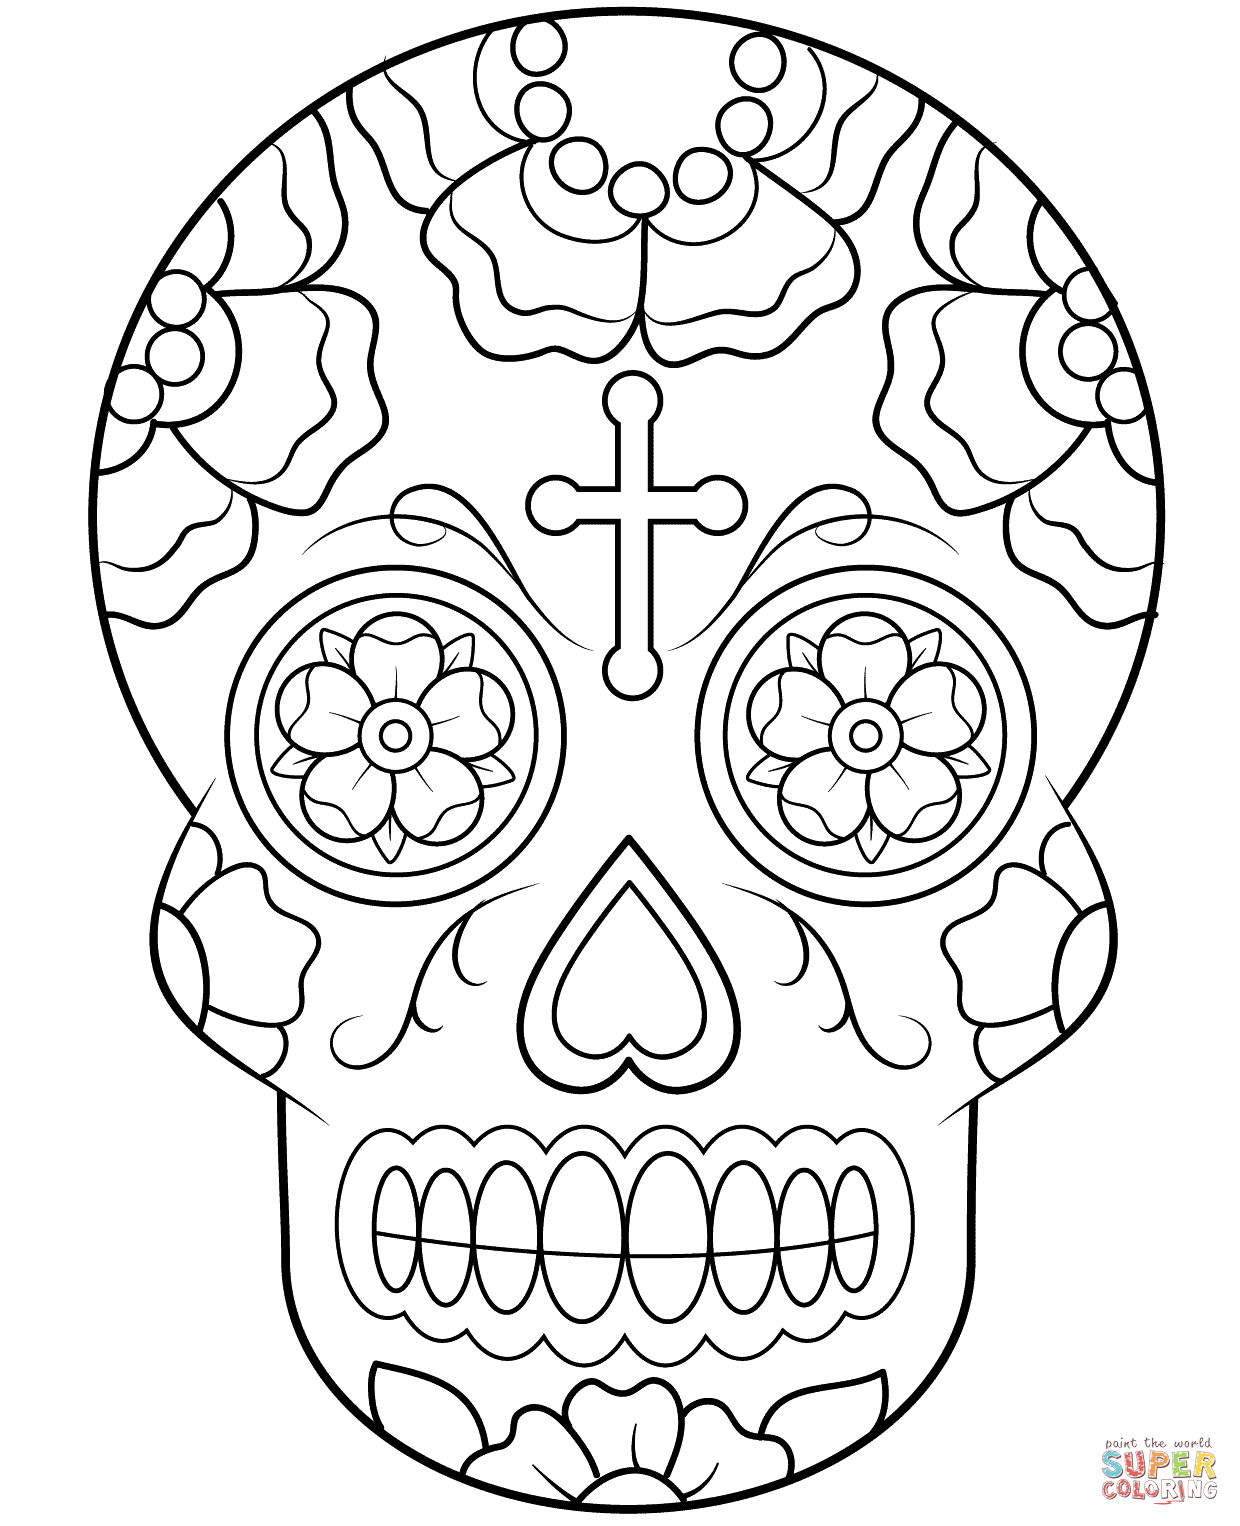 1240x1526 Coloring Download Flaming Skull Pages In Colouring Book